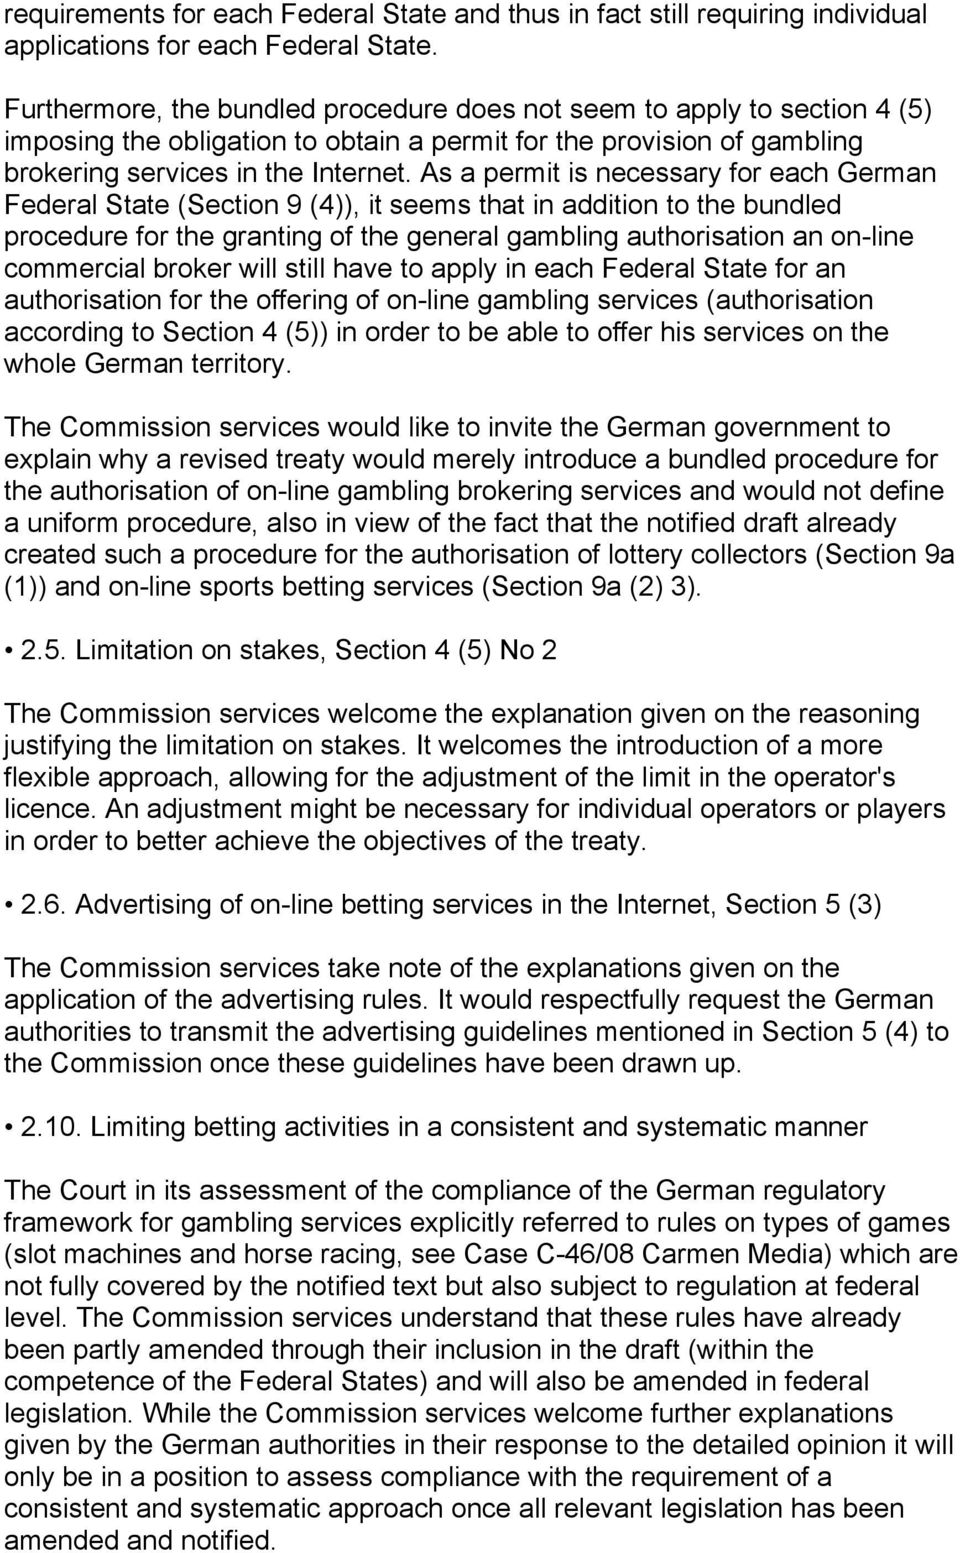 As a permit is necessary for each German Federal State (Section 9 (4)), it seems that in addition to the bundled procedure for the granting of the general gambling authorisation an on-line commercial